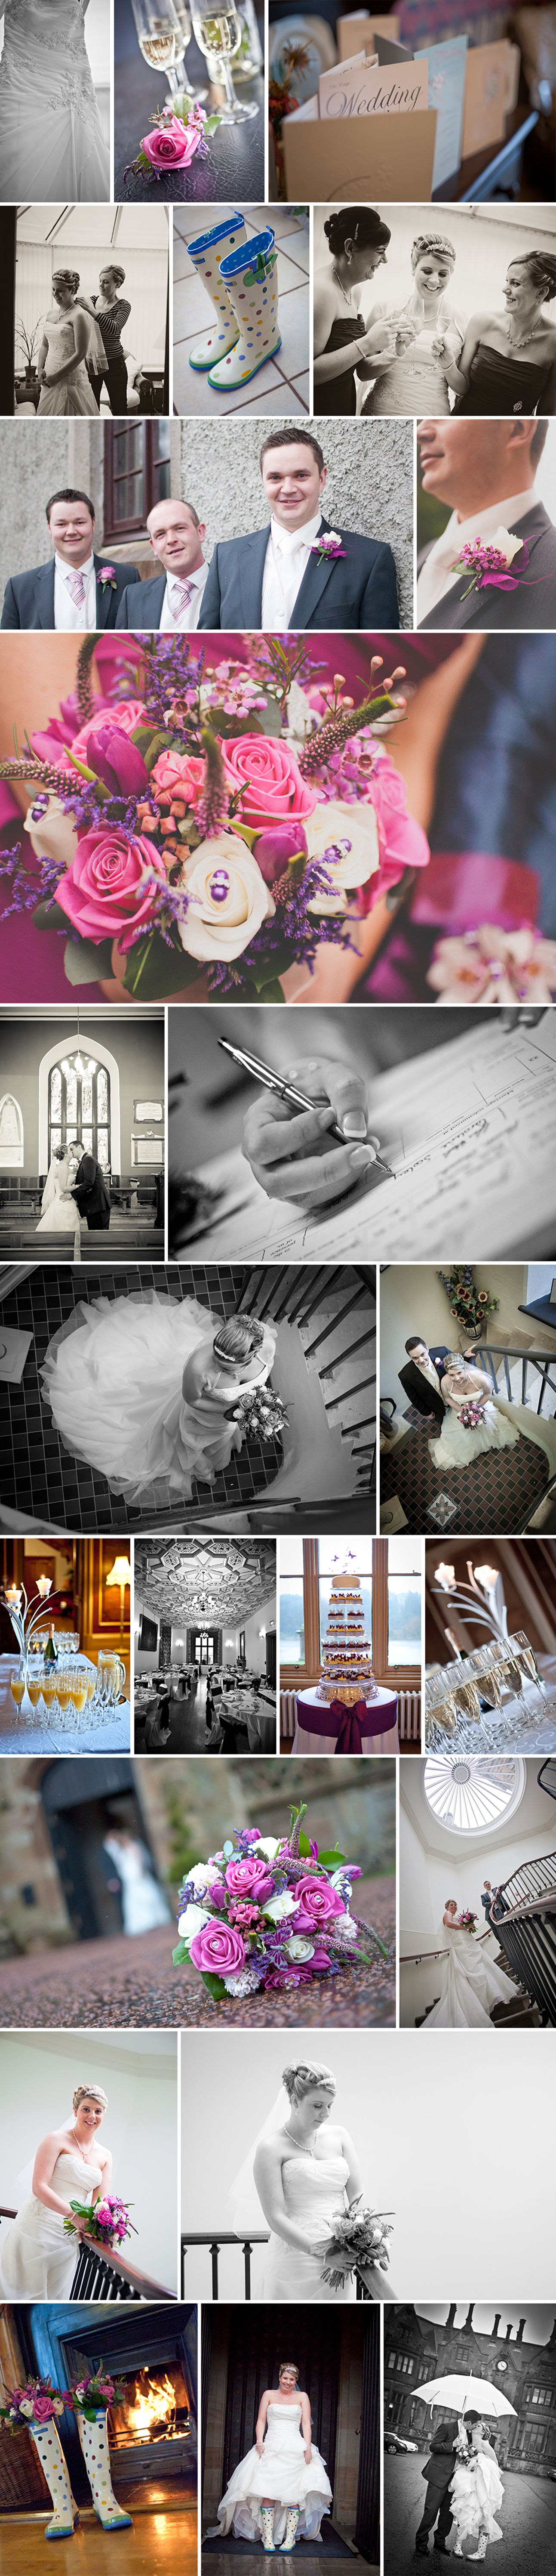 wedding_photography_brownlow_house_lurgan